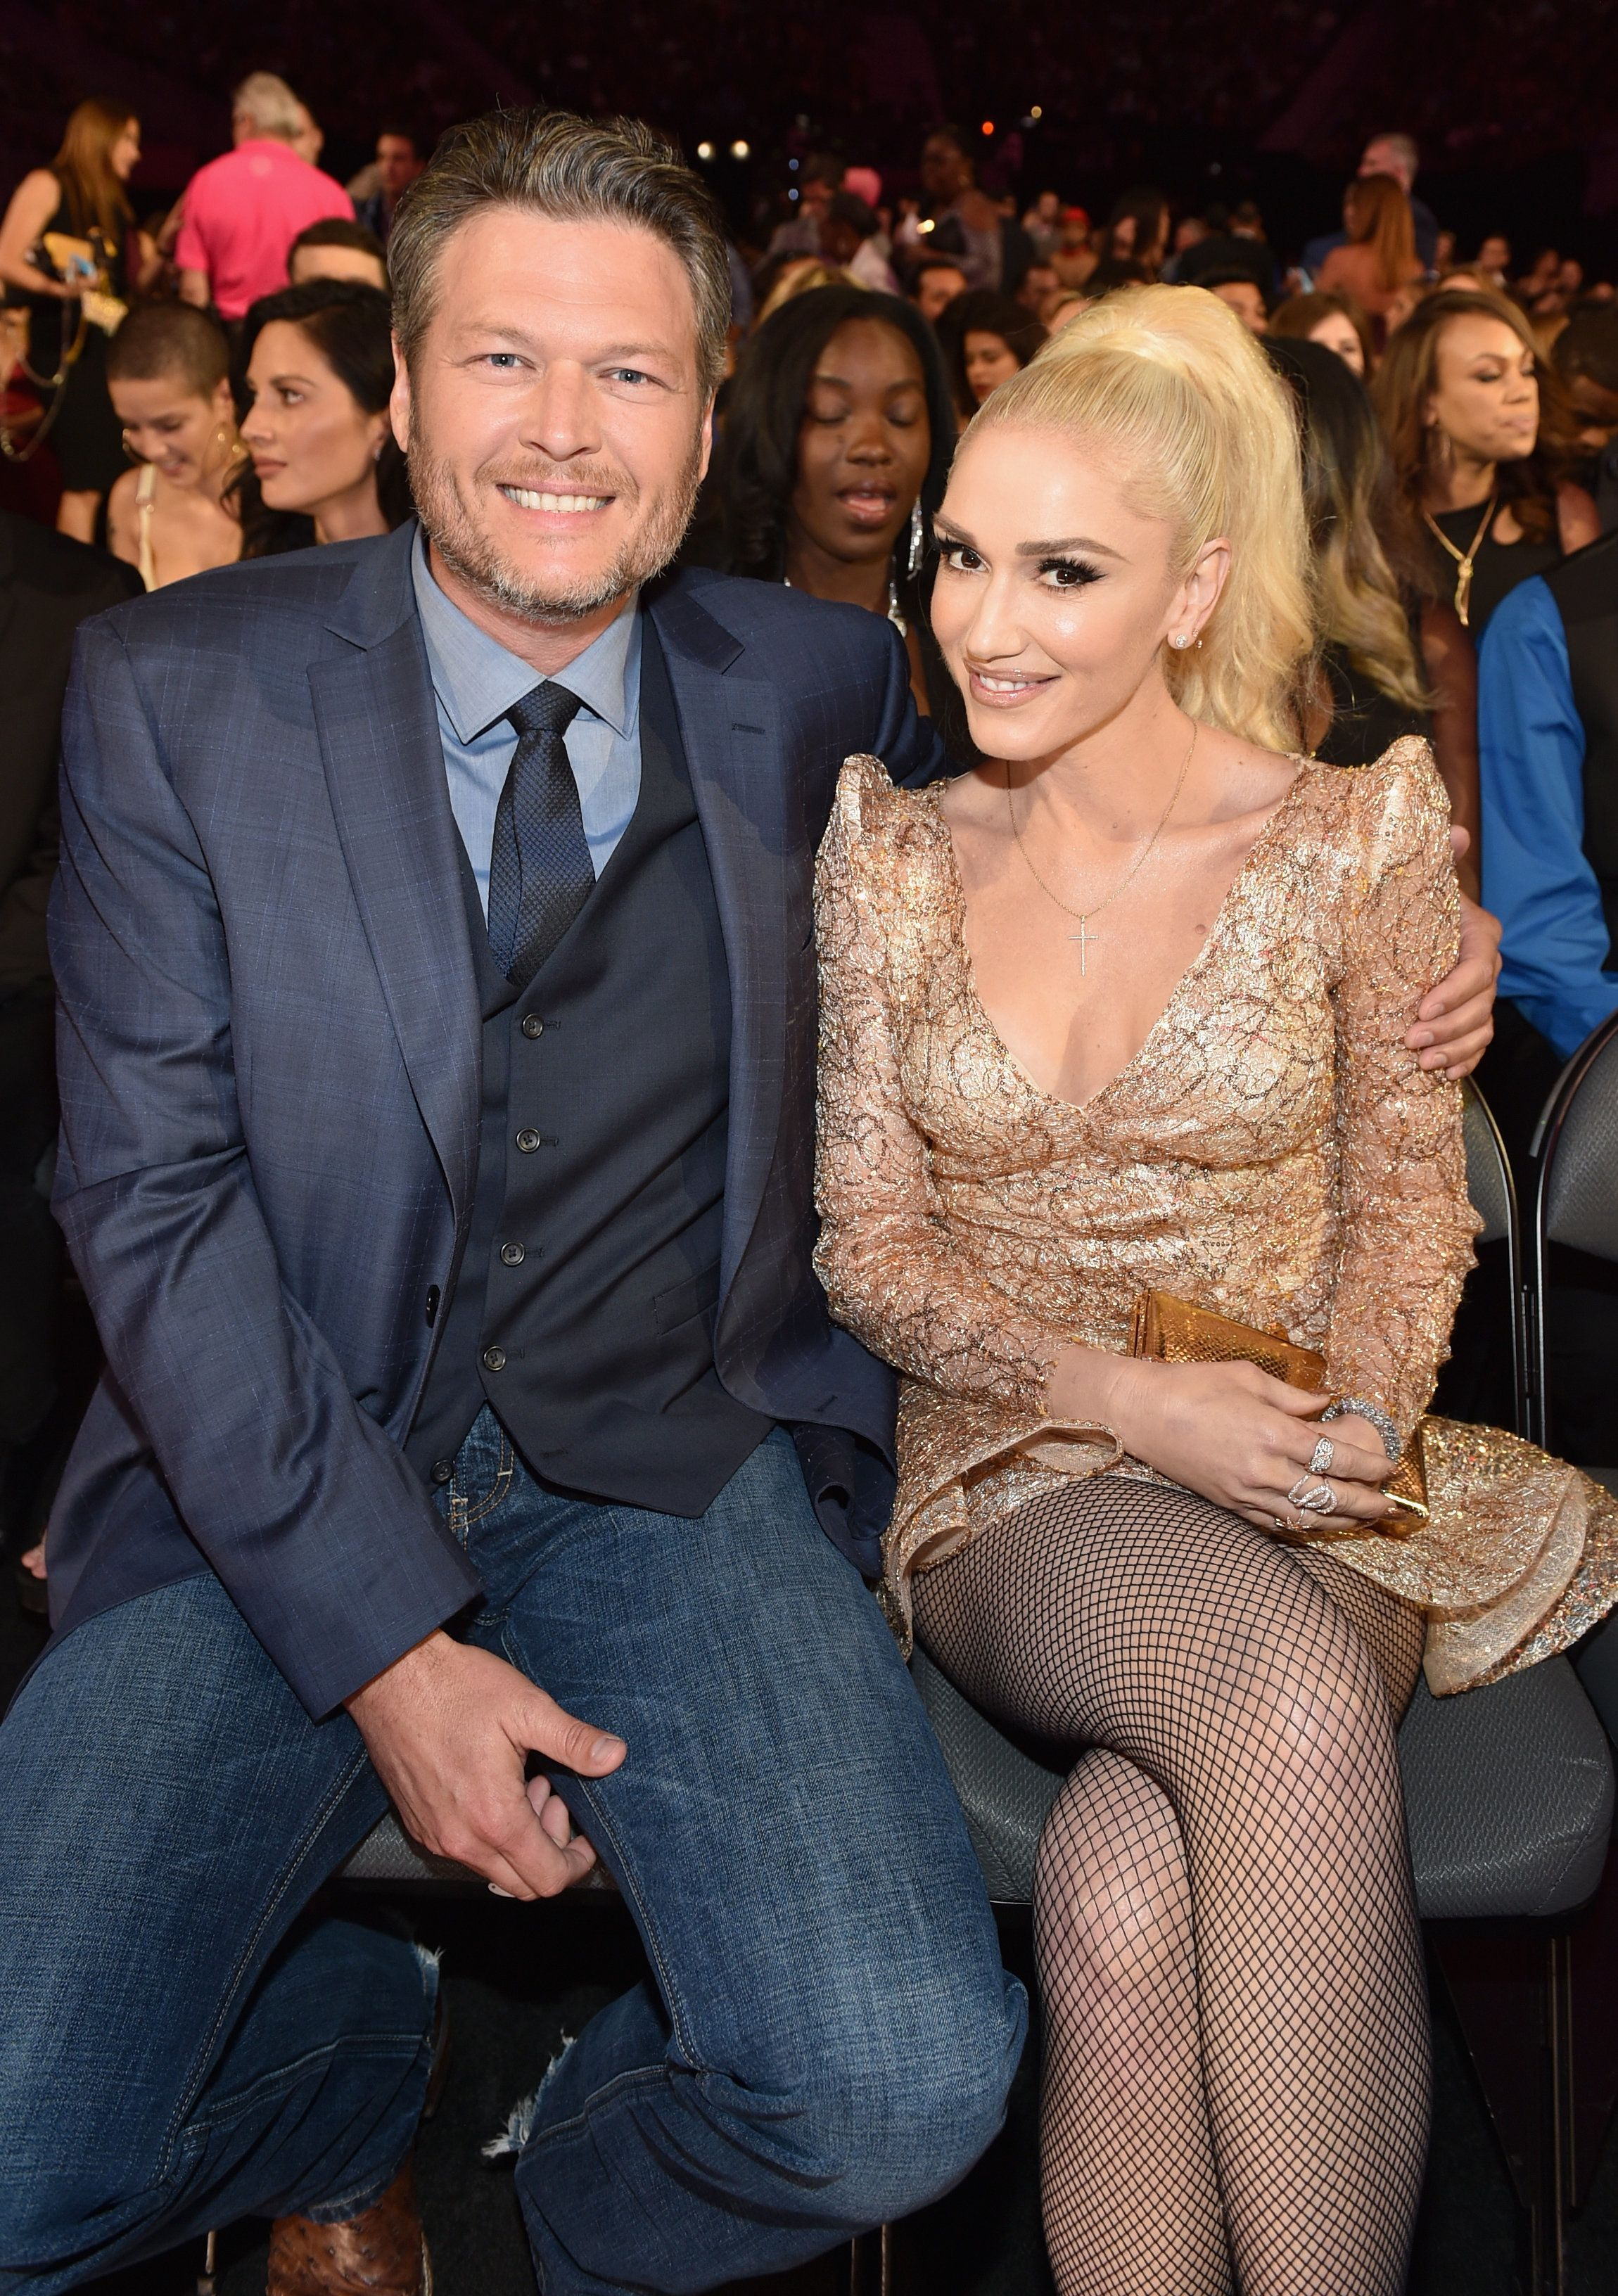 Blake Shelton and Gwen Stefani at the 2017 Billboard Music Awards.